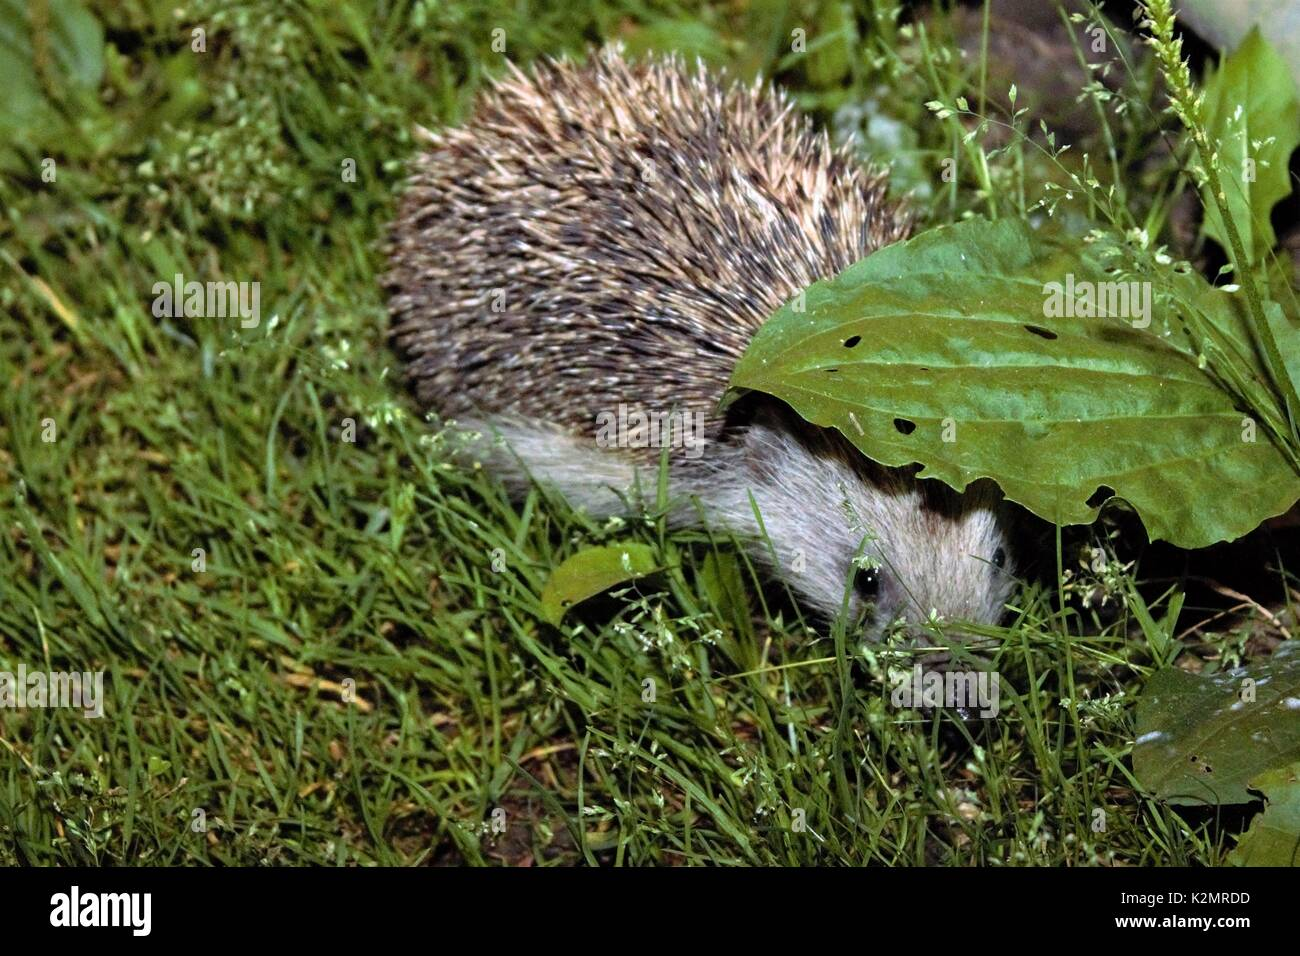 European hedgehog, green leaf - Stock Image